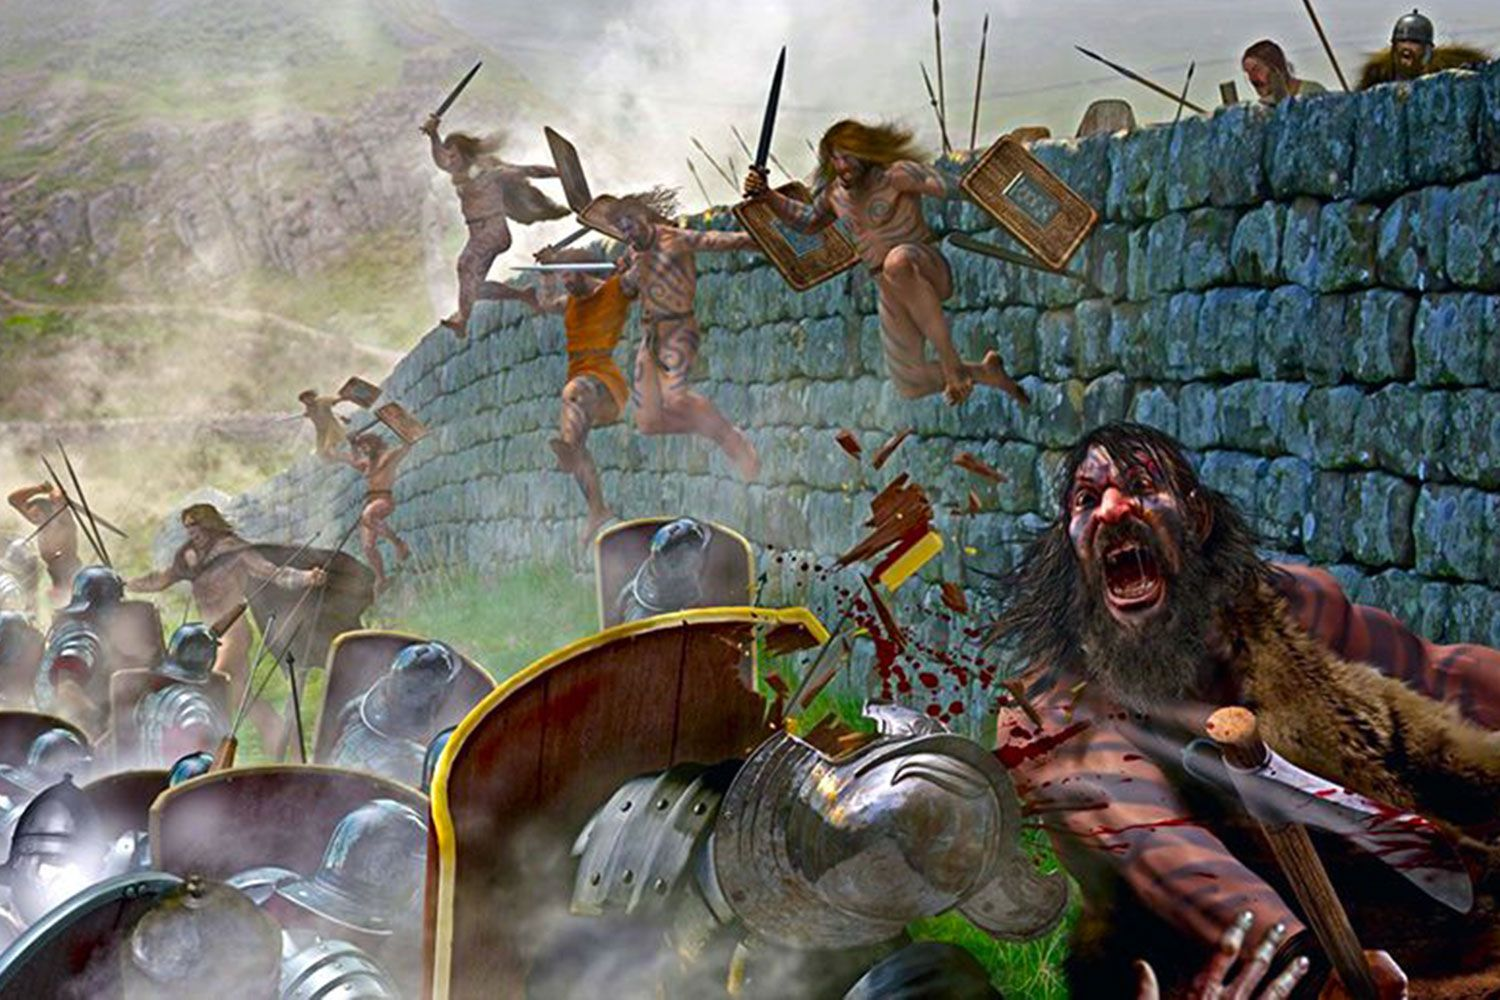 The fierce brutality of the Picts tested Roman resolve